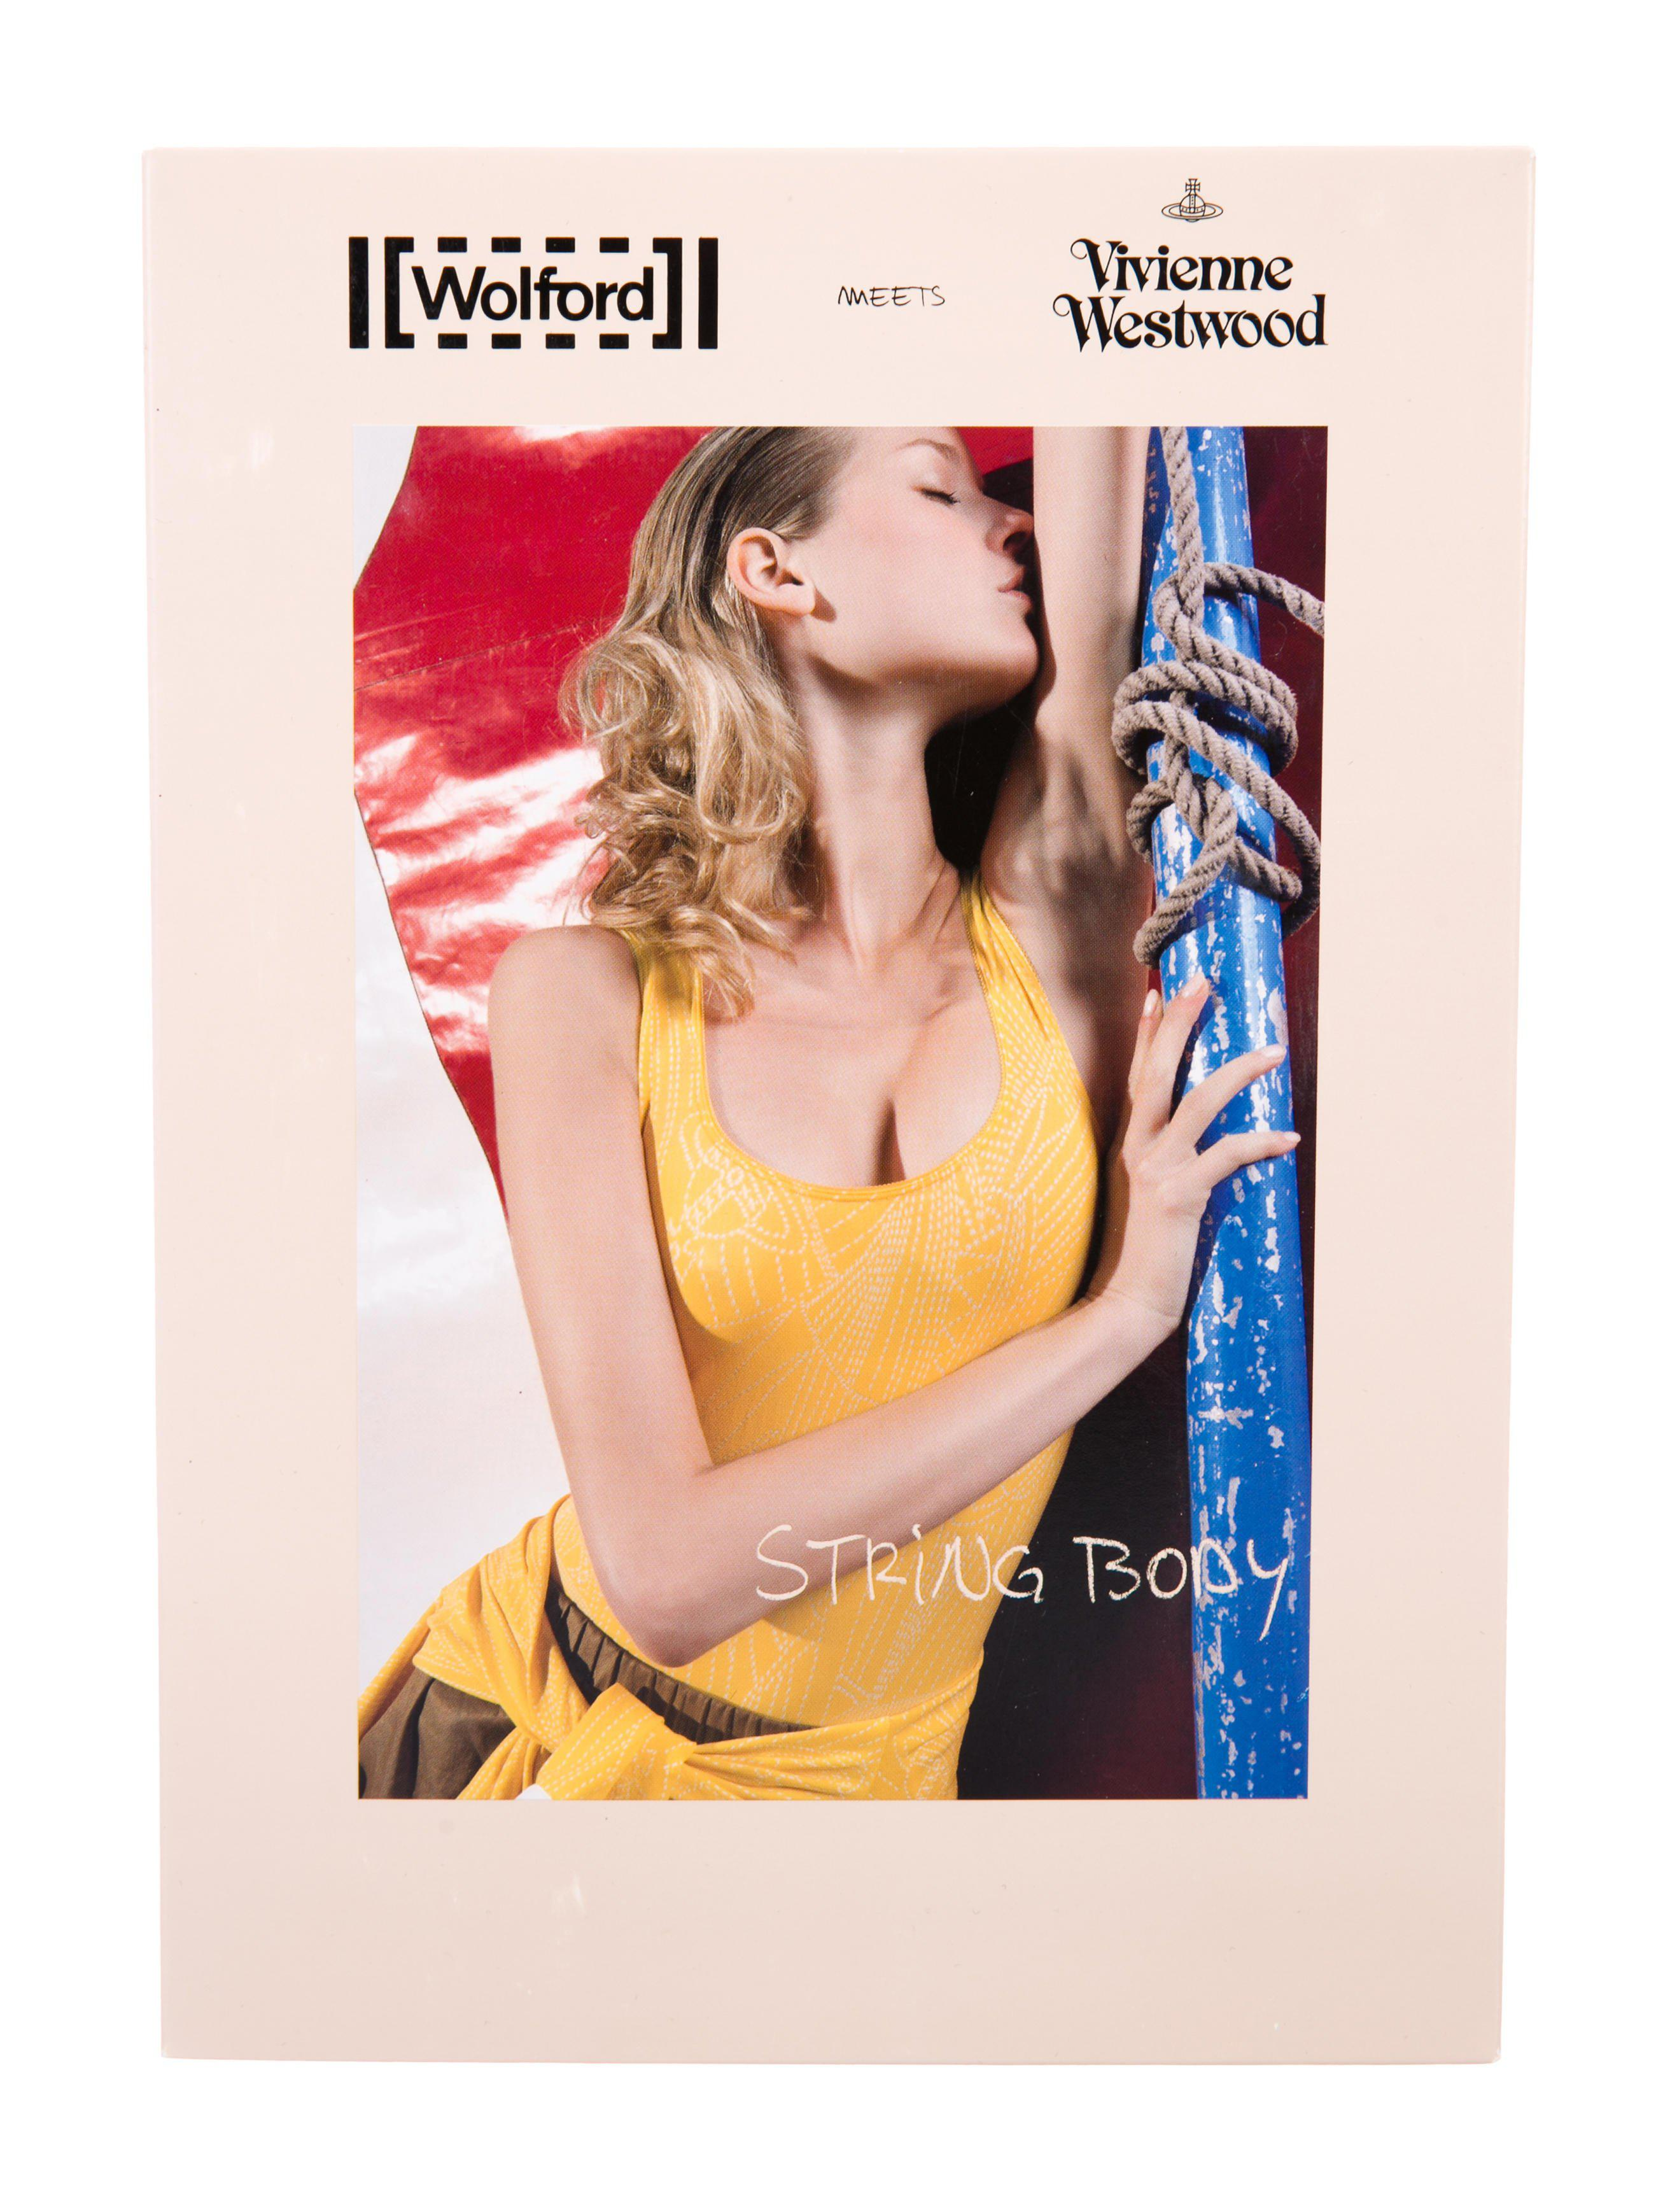 Discount Largest Supplier Discount 2018 New Vivienne Westwood Cocoette String Bodysuit w/ Tags Shopping Online Cheap Online Yvf6aJT8Q